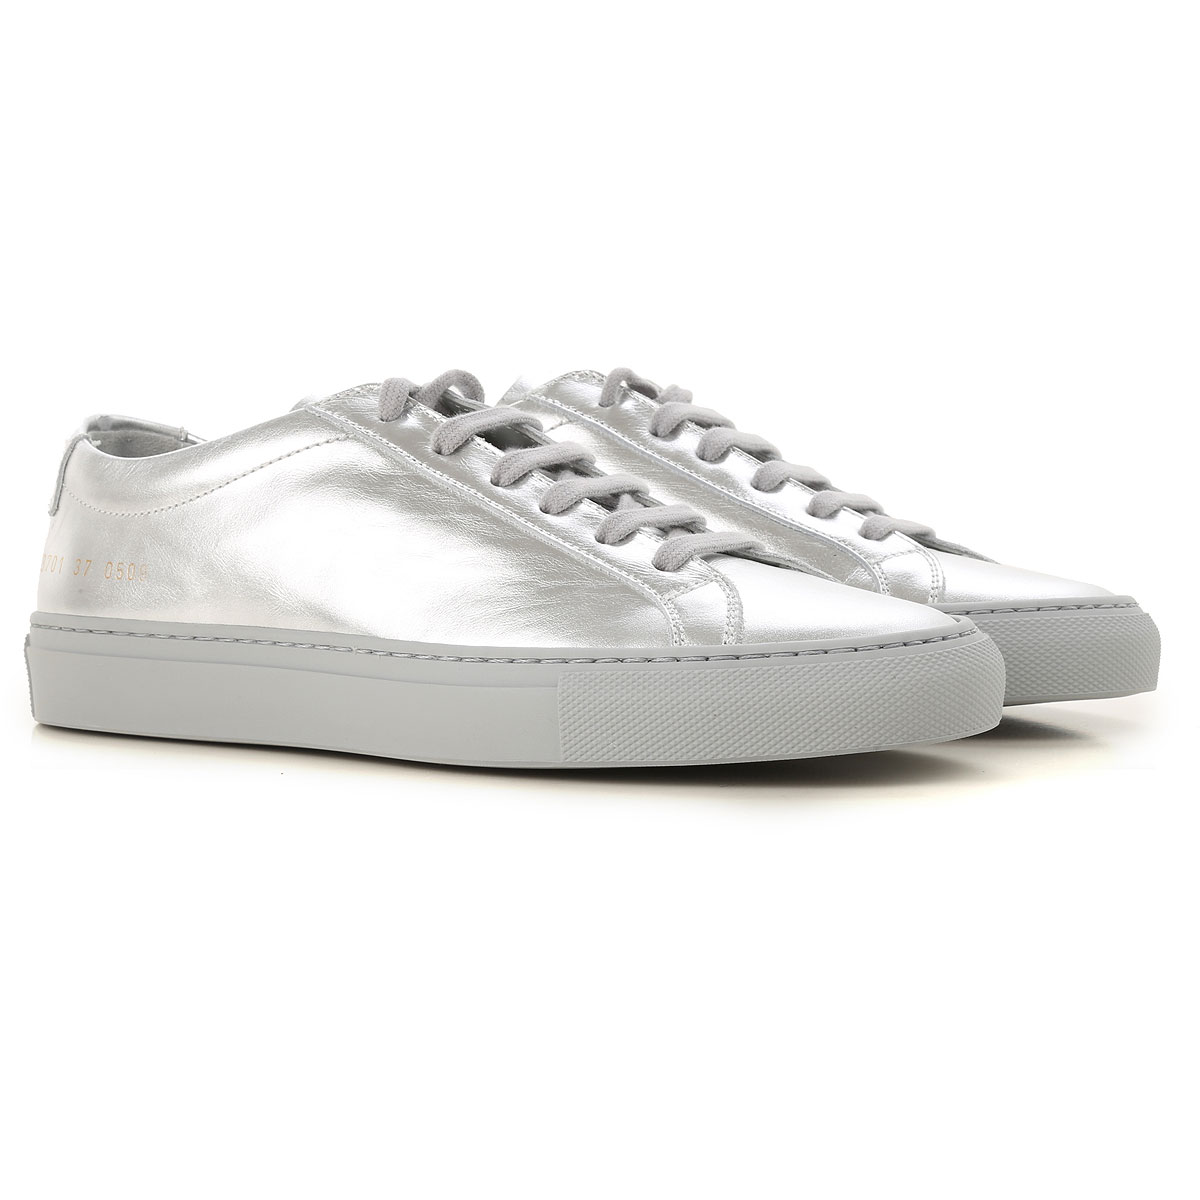 Image of Woman by Common Projects Sneakers for Women, Silver, Patent, 2017, 10 5 6 7 8 9